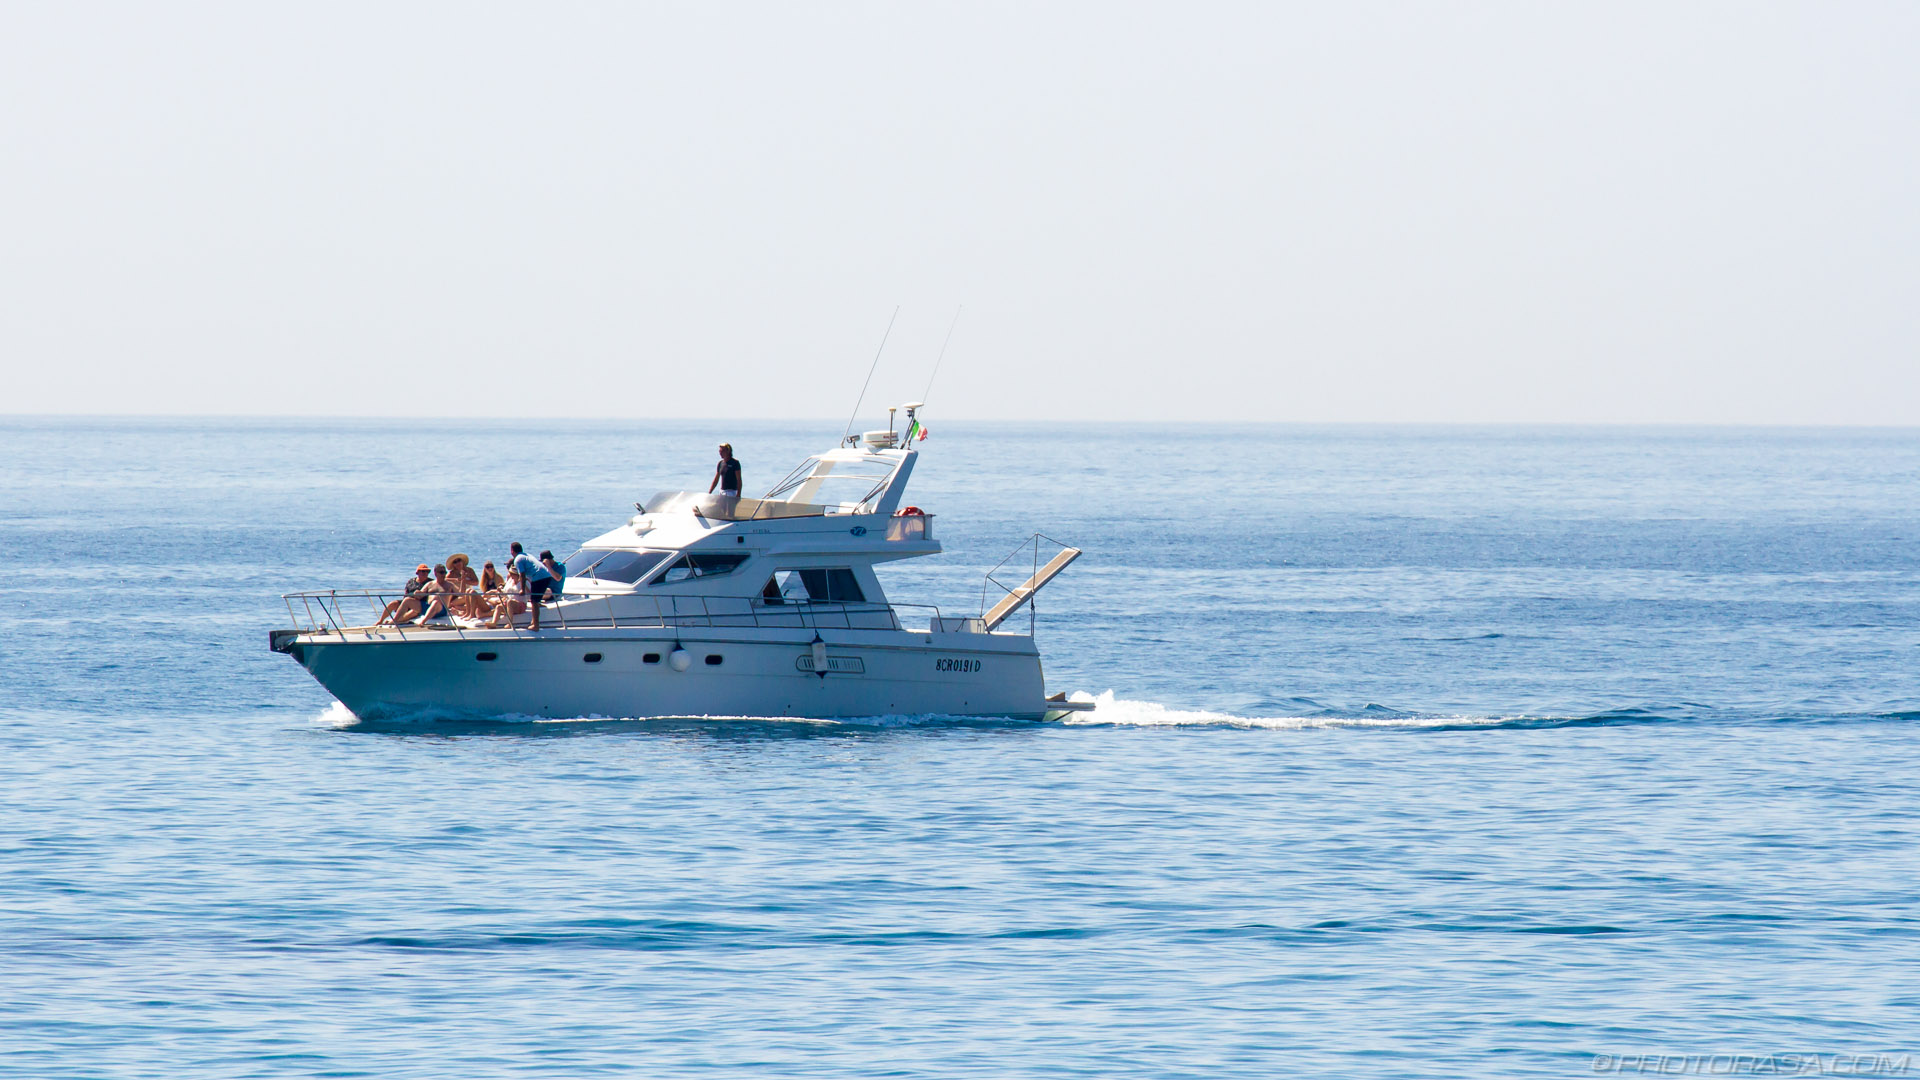 http://photorasa.com/giardini-naxos/speeding-yacht-full-of-people/